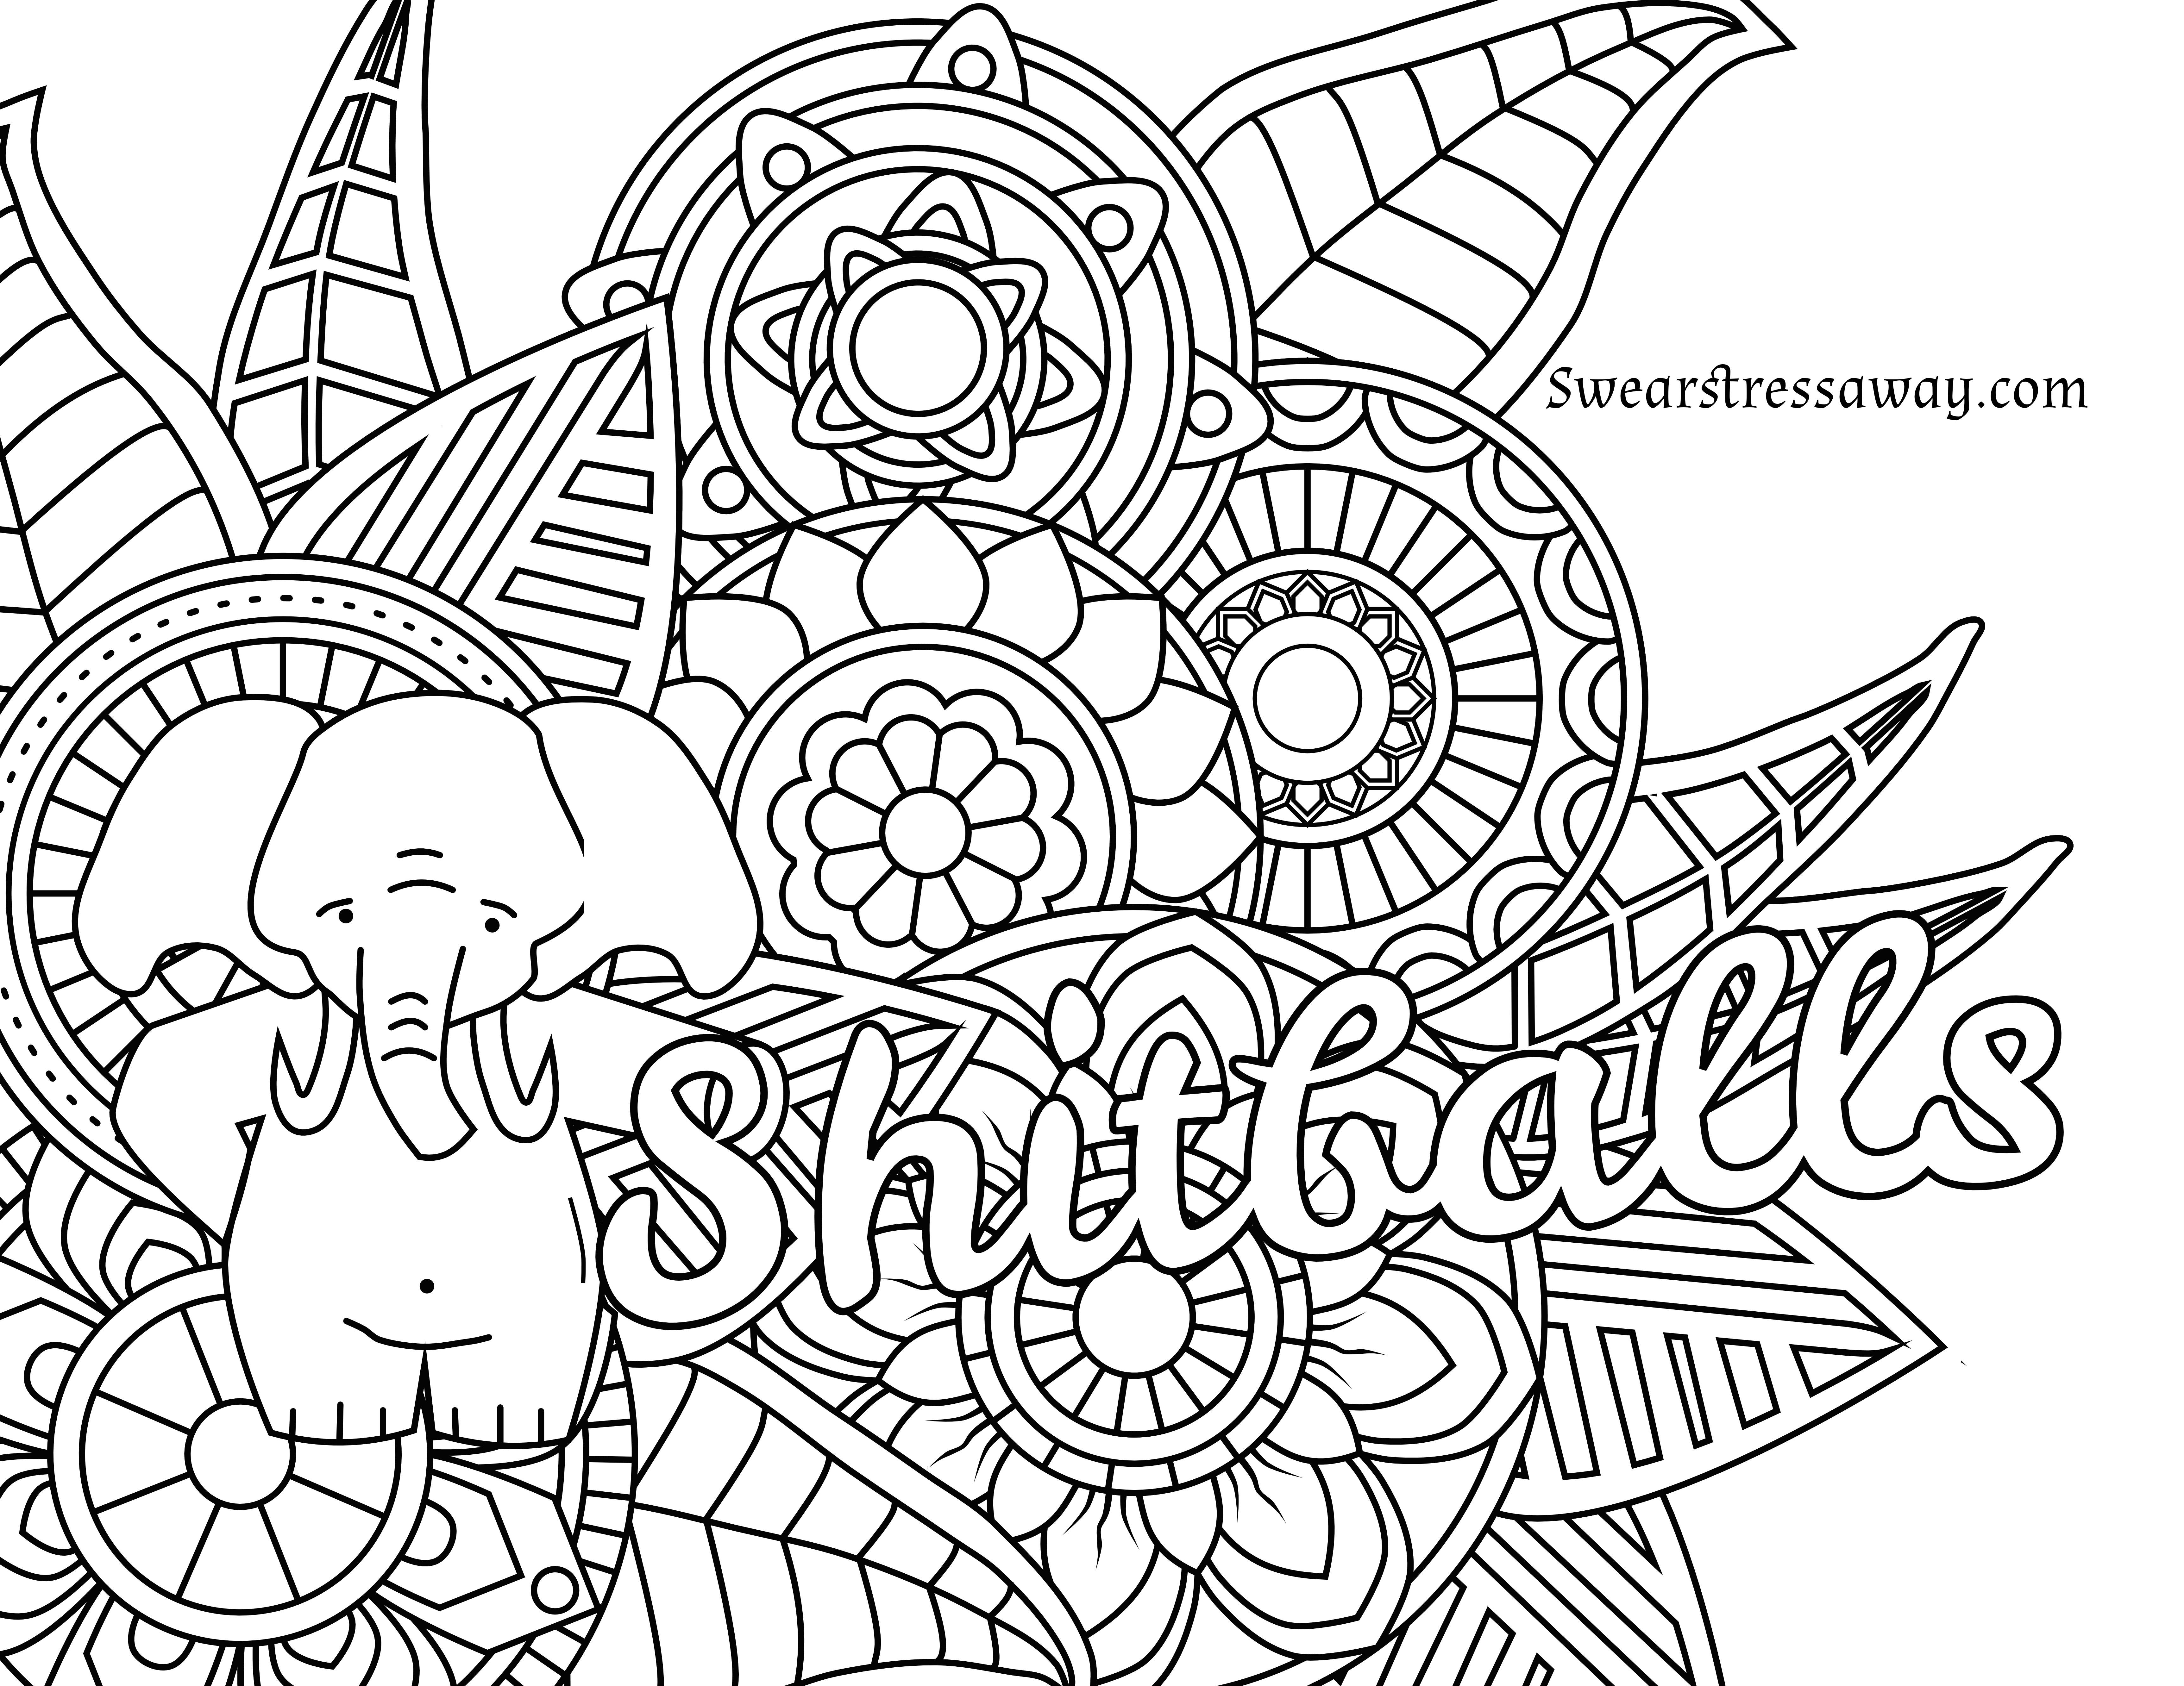 Free Printable Coloring Page - Shitballs - Swear Word Coloring Page - Free Printable Coloring Pages For Adults Swear Words